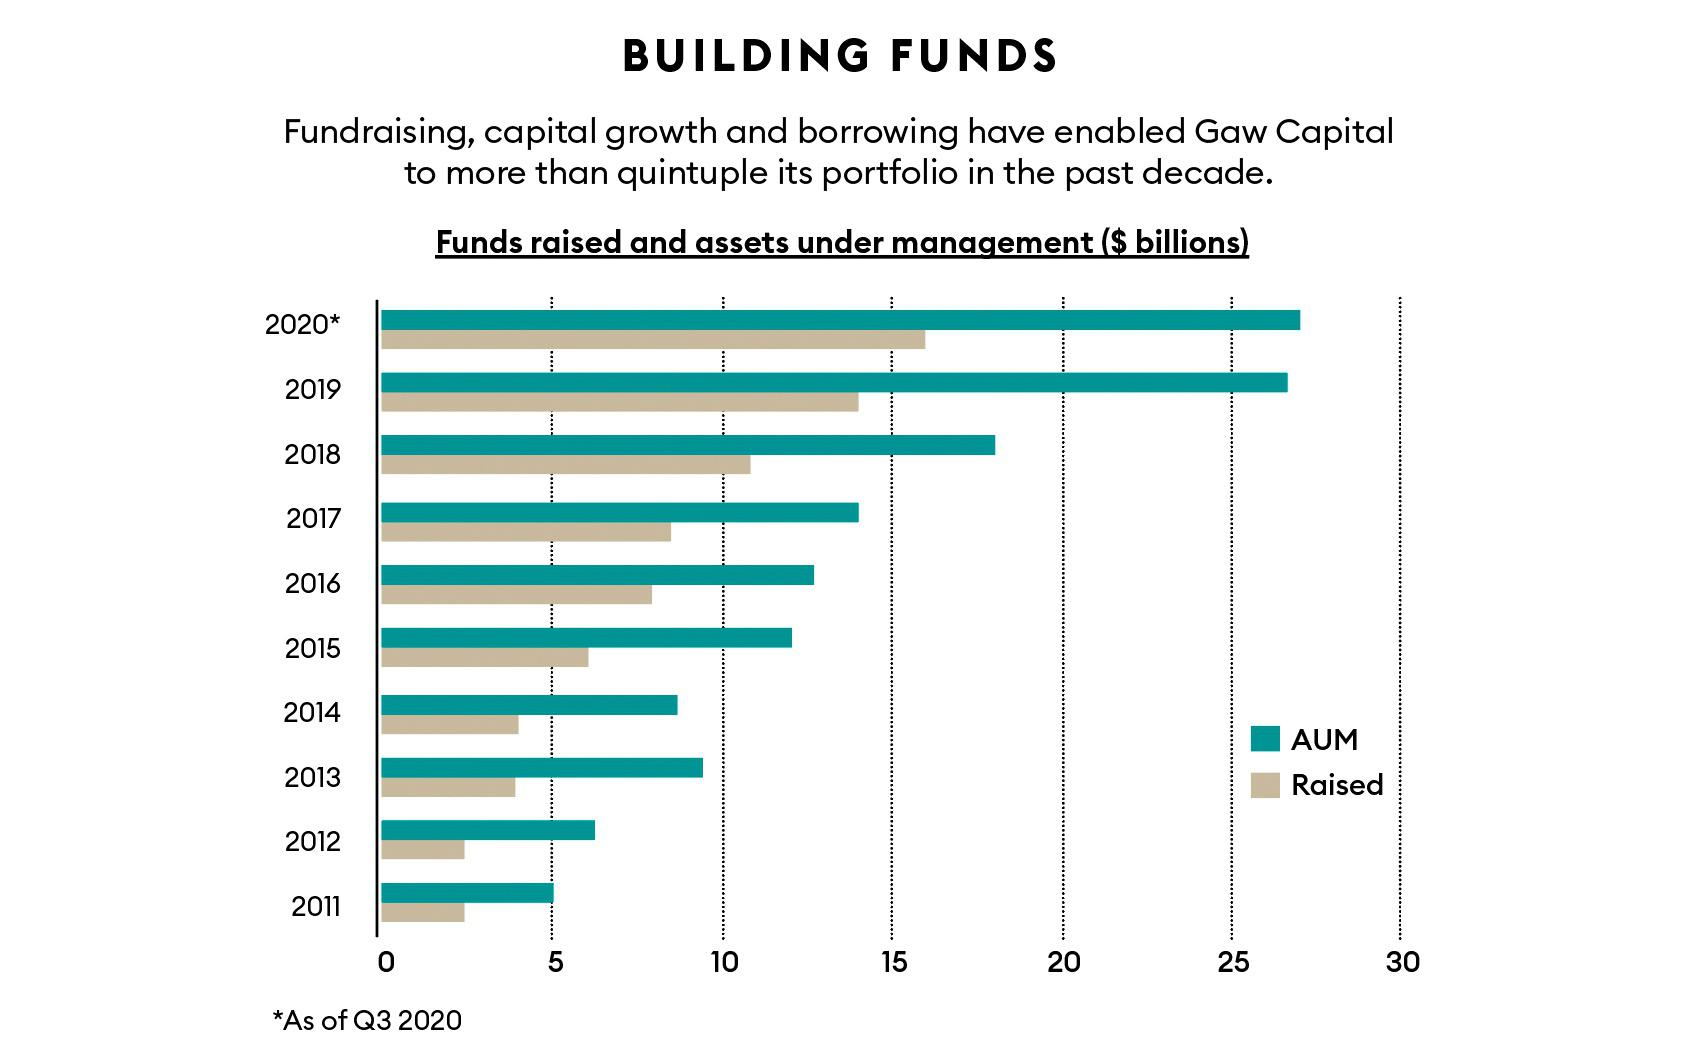 Gaw Capital funds raised and assets under management